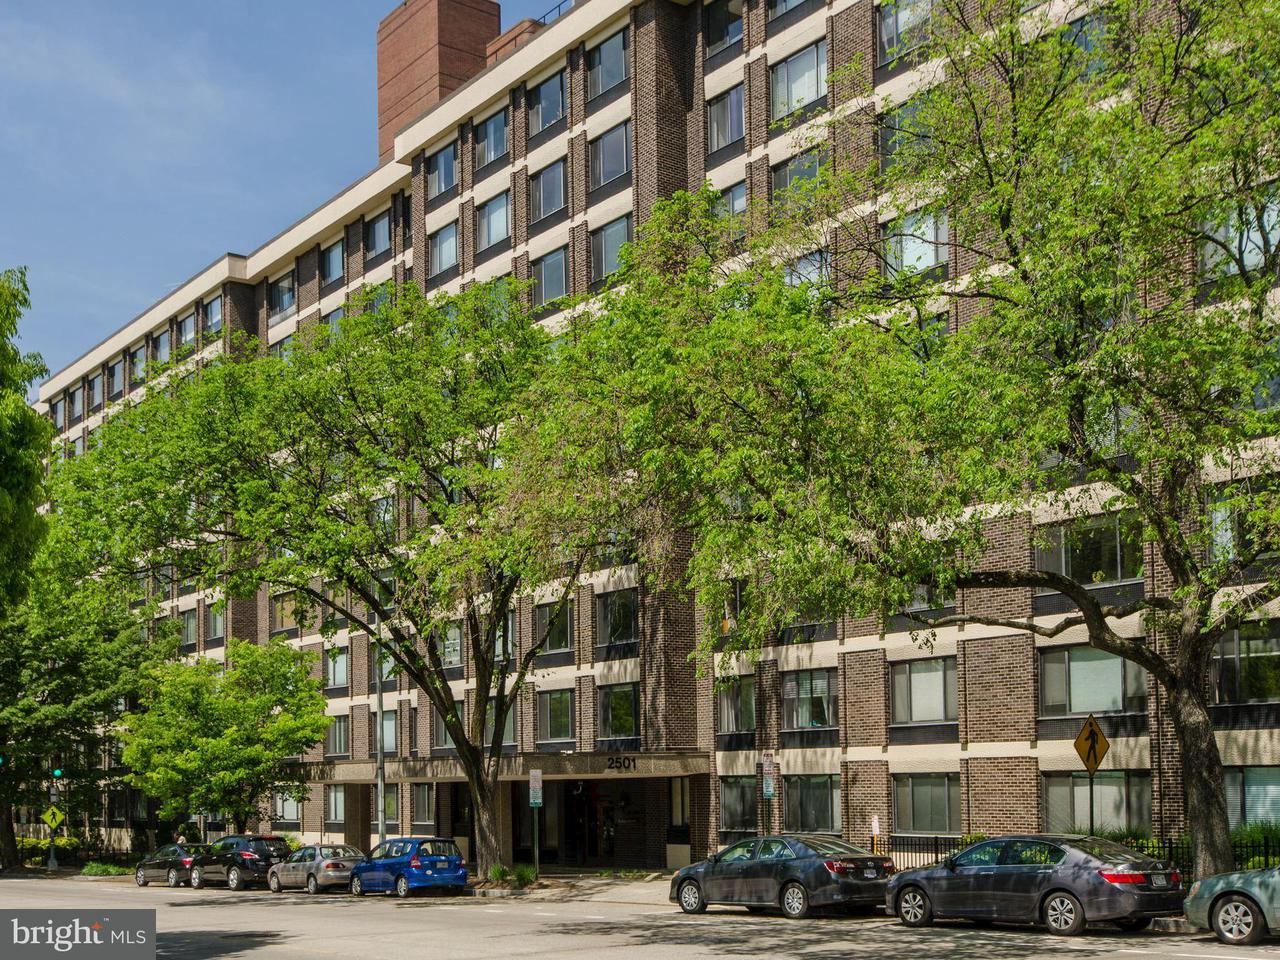 Condominium for Sale at 2501 Calvert St Nw #209 2501 Calvert St Nw #209 Washington, District Of Columbia 20008 United States